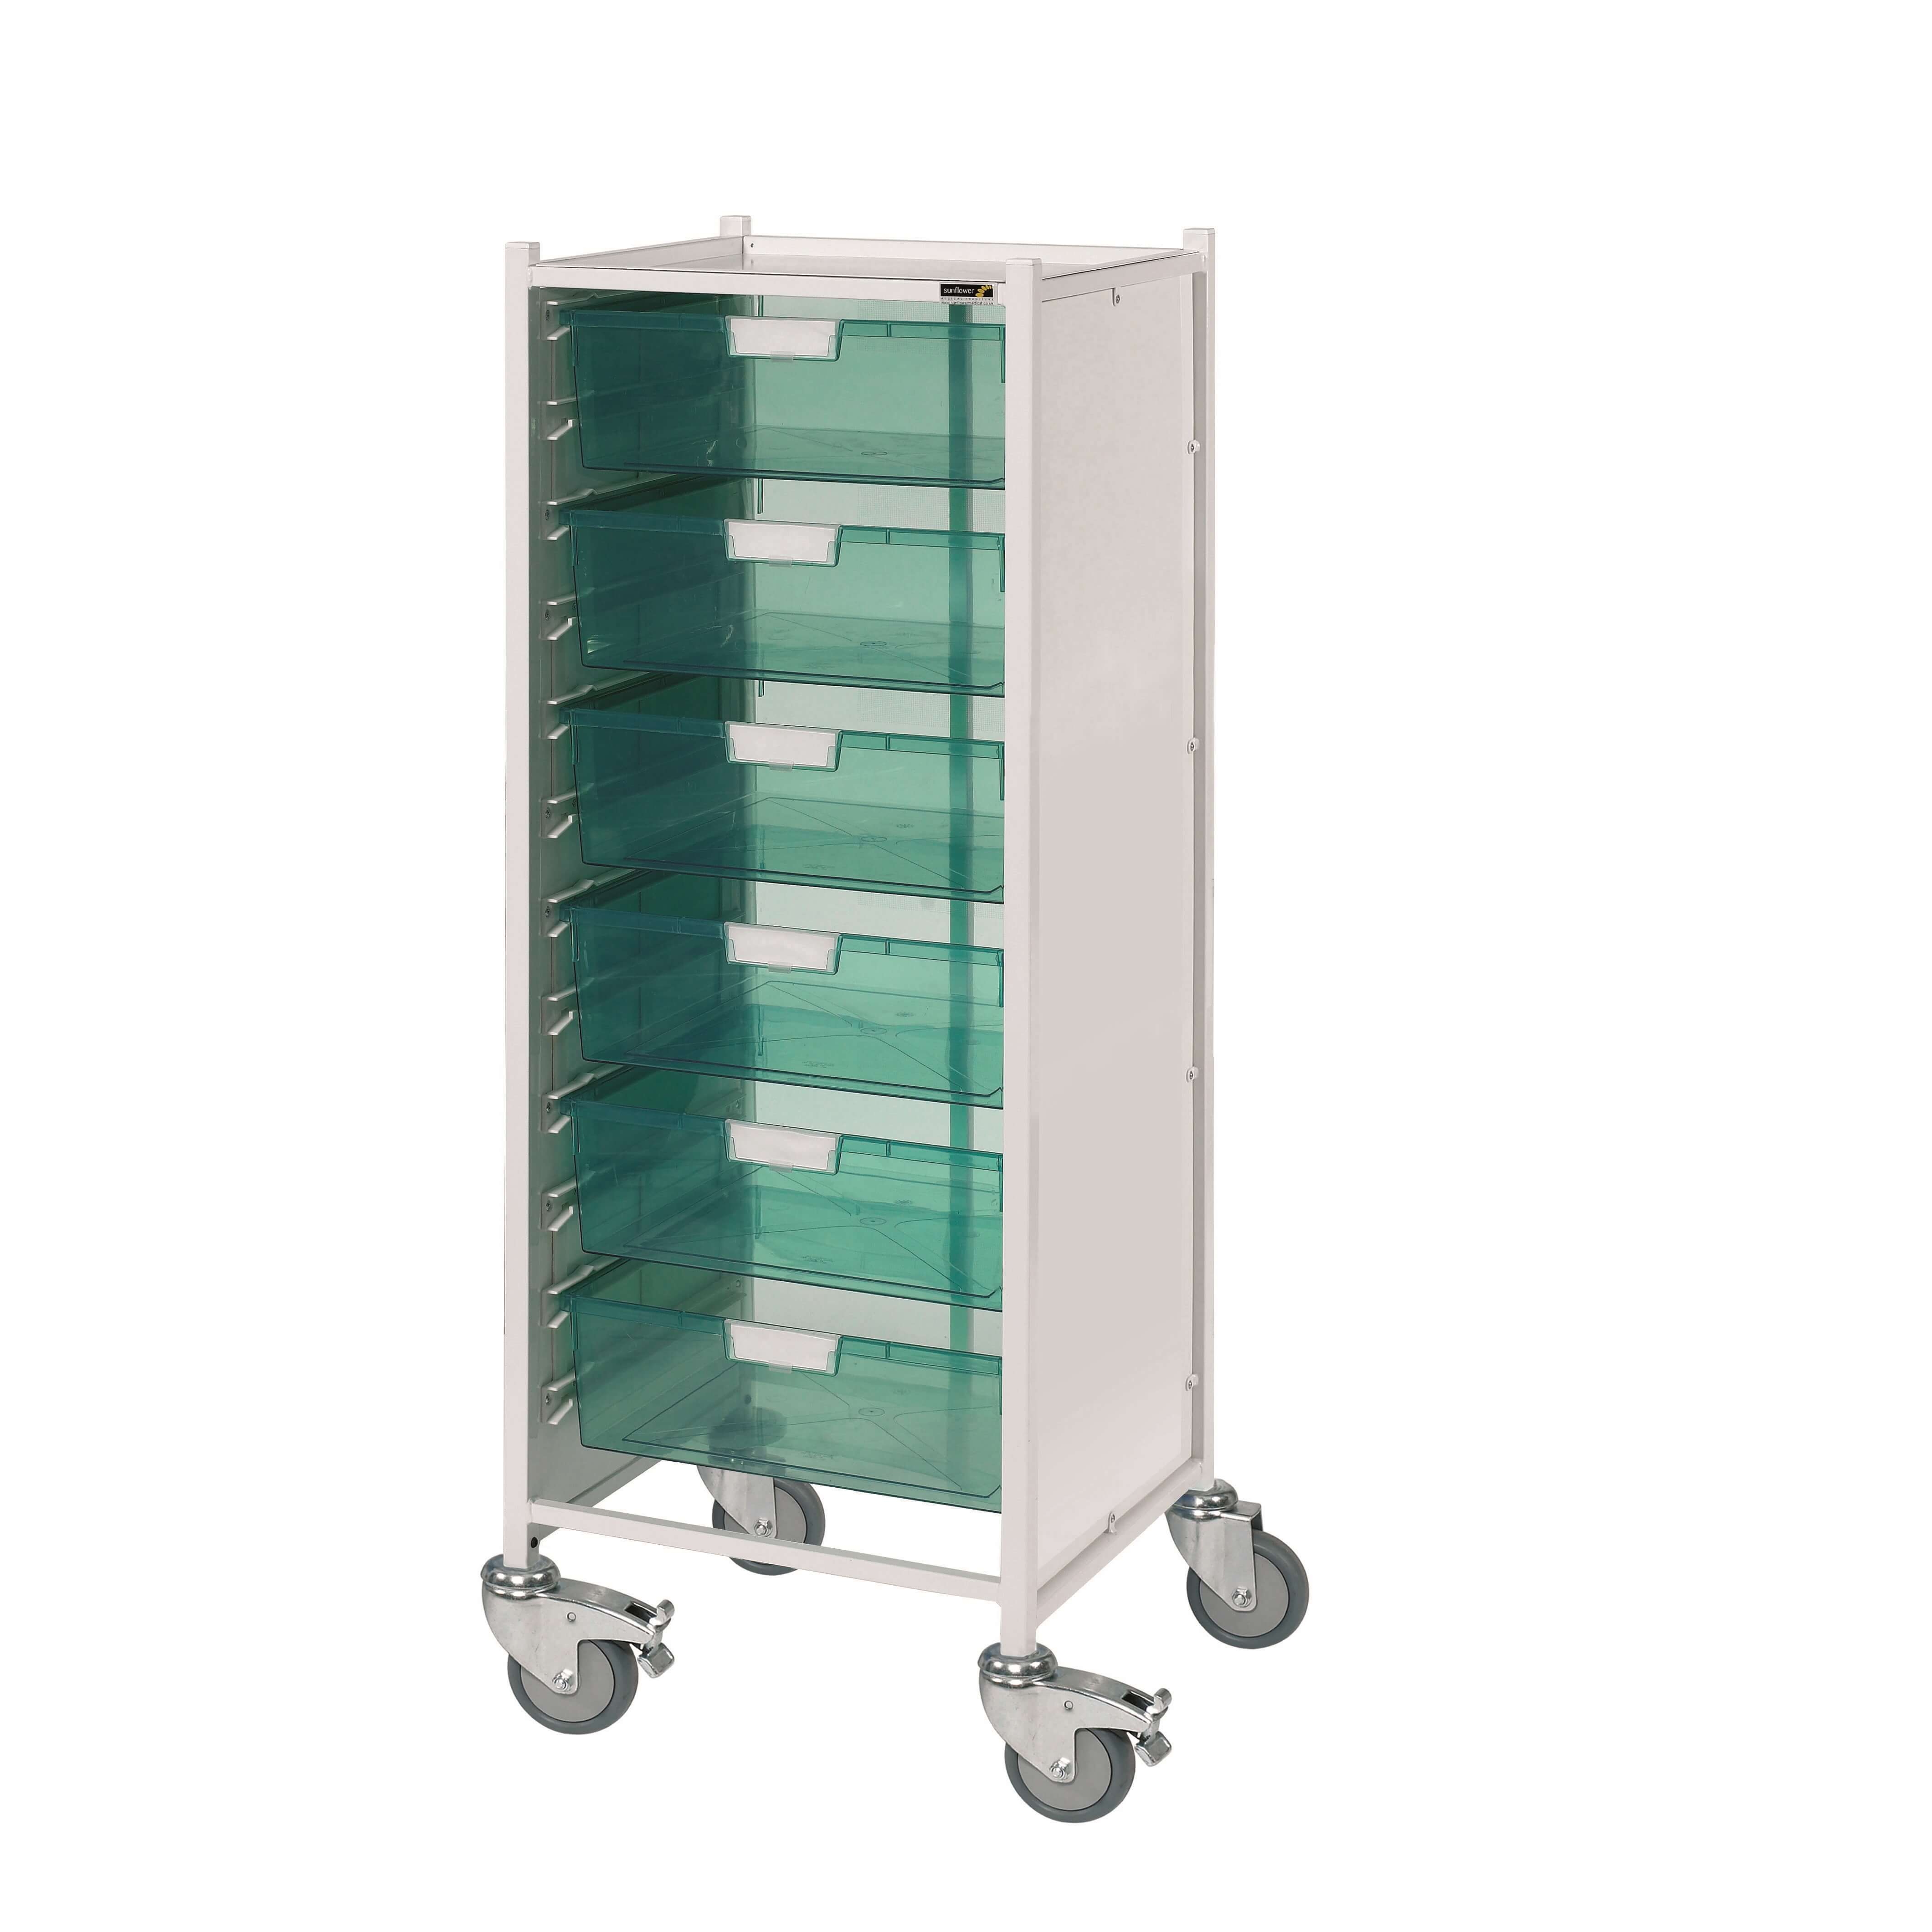 VISTA 120 Trolley with 6 Double Trays [Sun-MPT122]